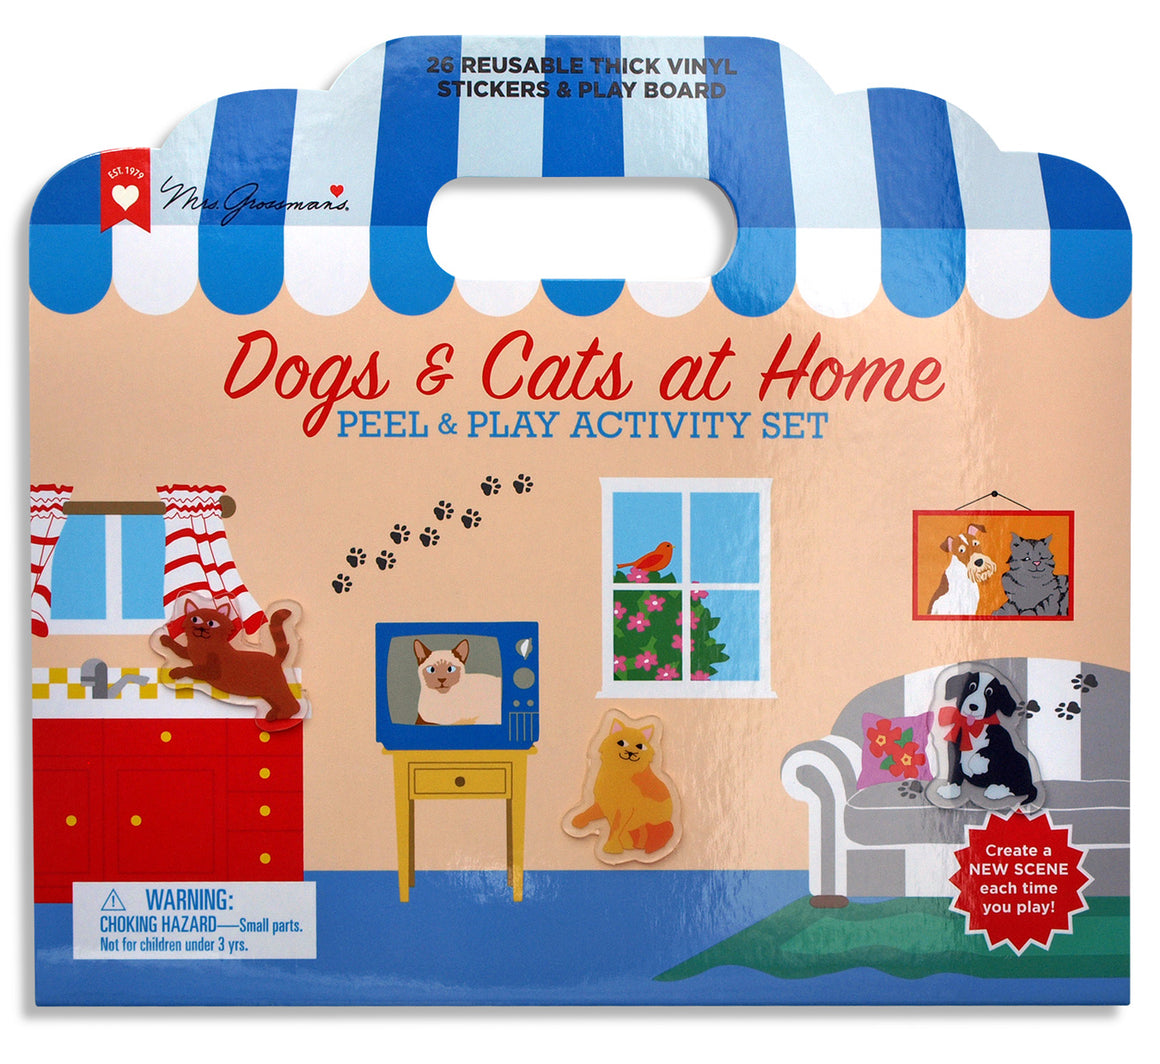 Dogs & Cats at Home Peel and Play Activity Set - Mrs. Grossman's